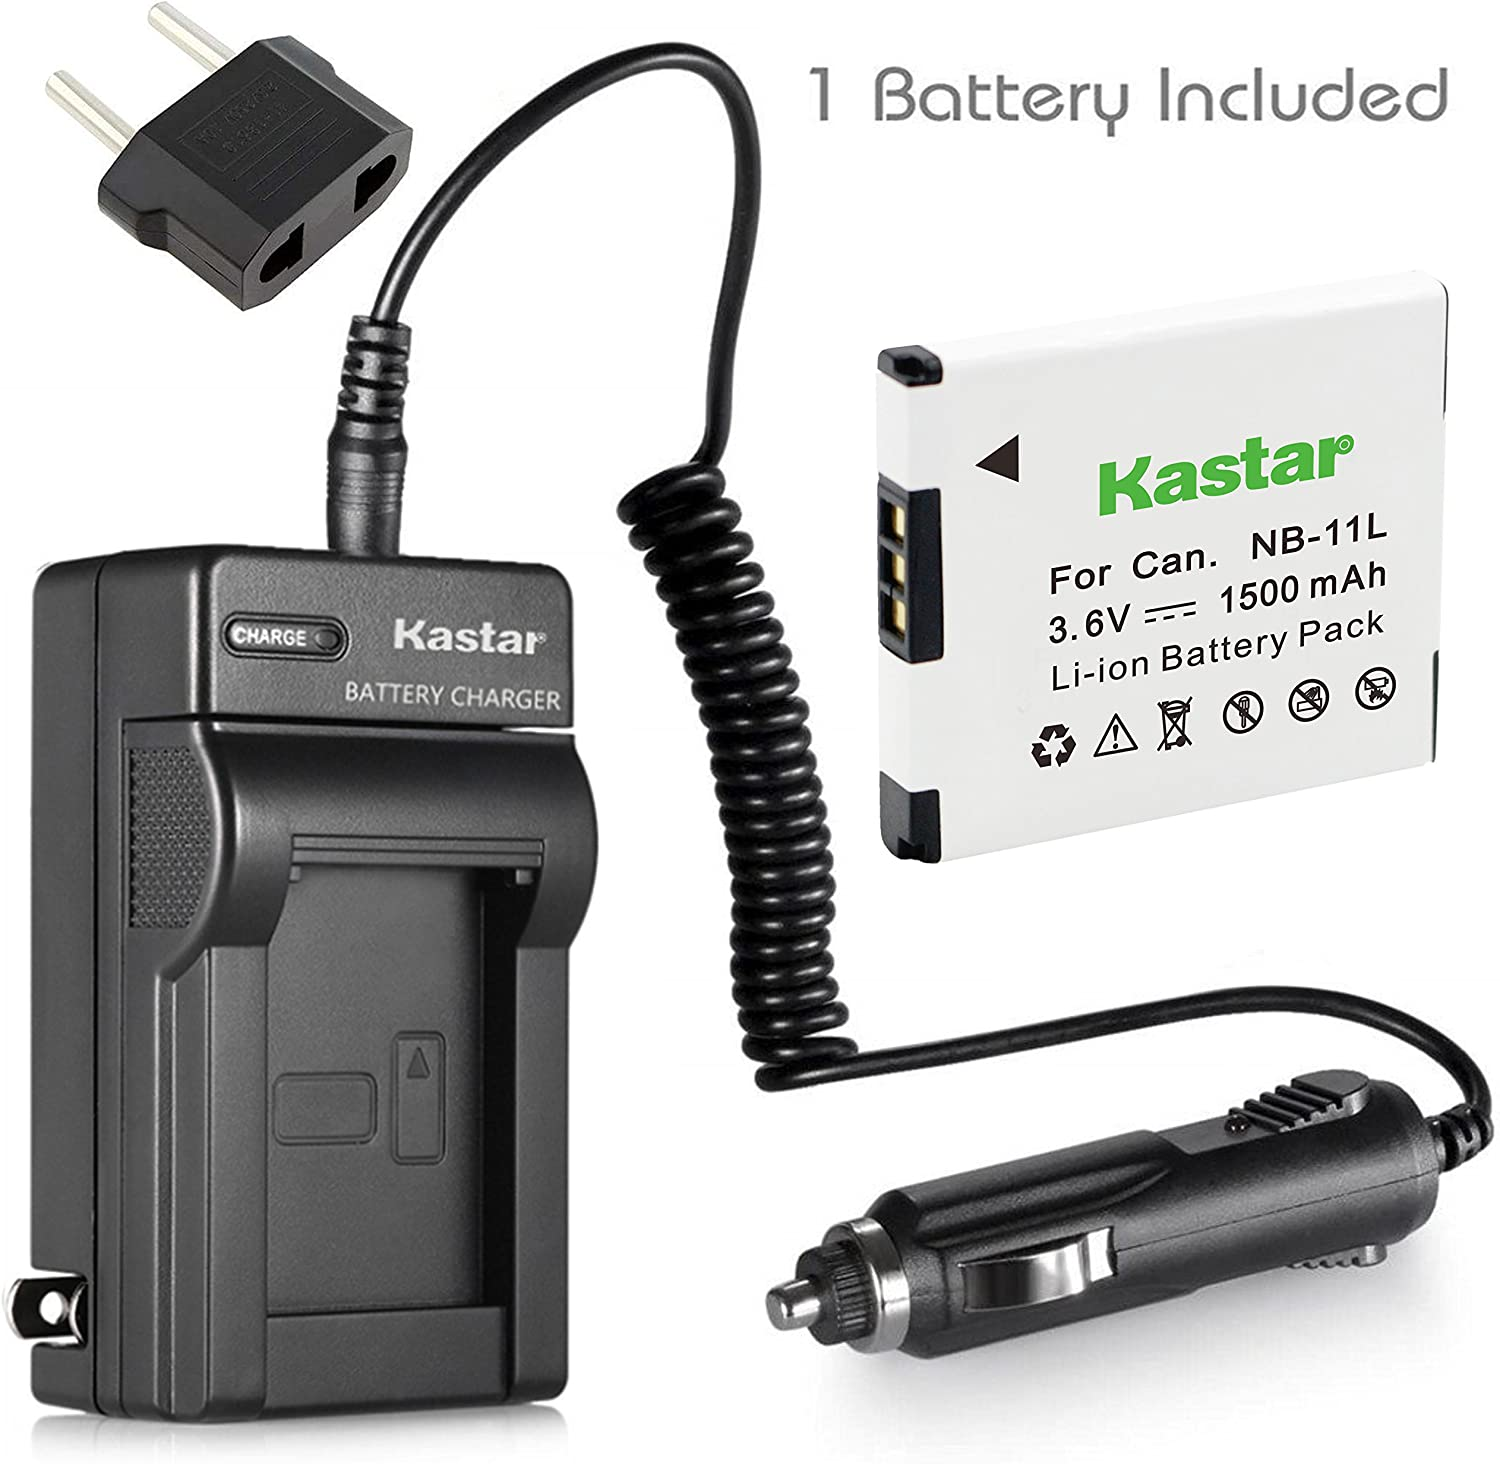 Kastar NB 11L Battery 1X and Charger for Canon PowerShot A2300 A2400 A2500 A2600 A3400 A3500 A4000 is ELPH 110 115 HS 30 HS 35 HS 140 HS 50 HS 320 HS